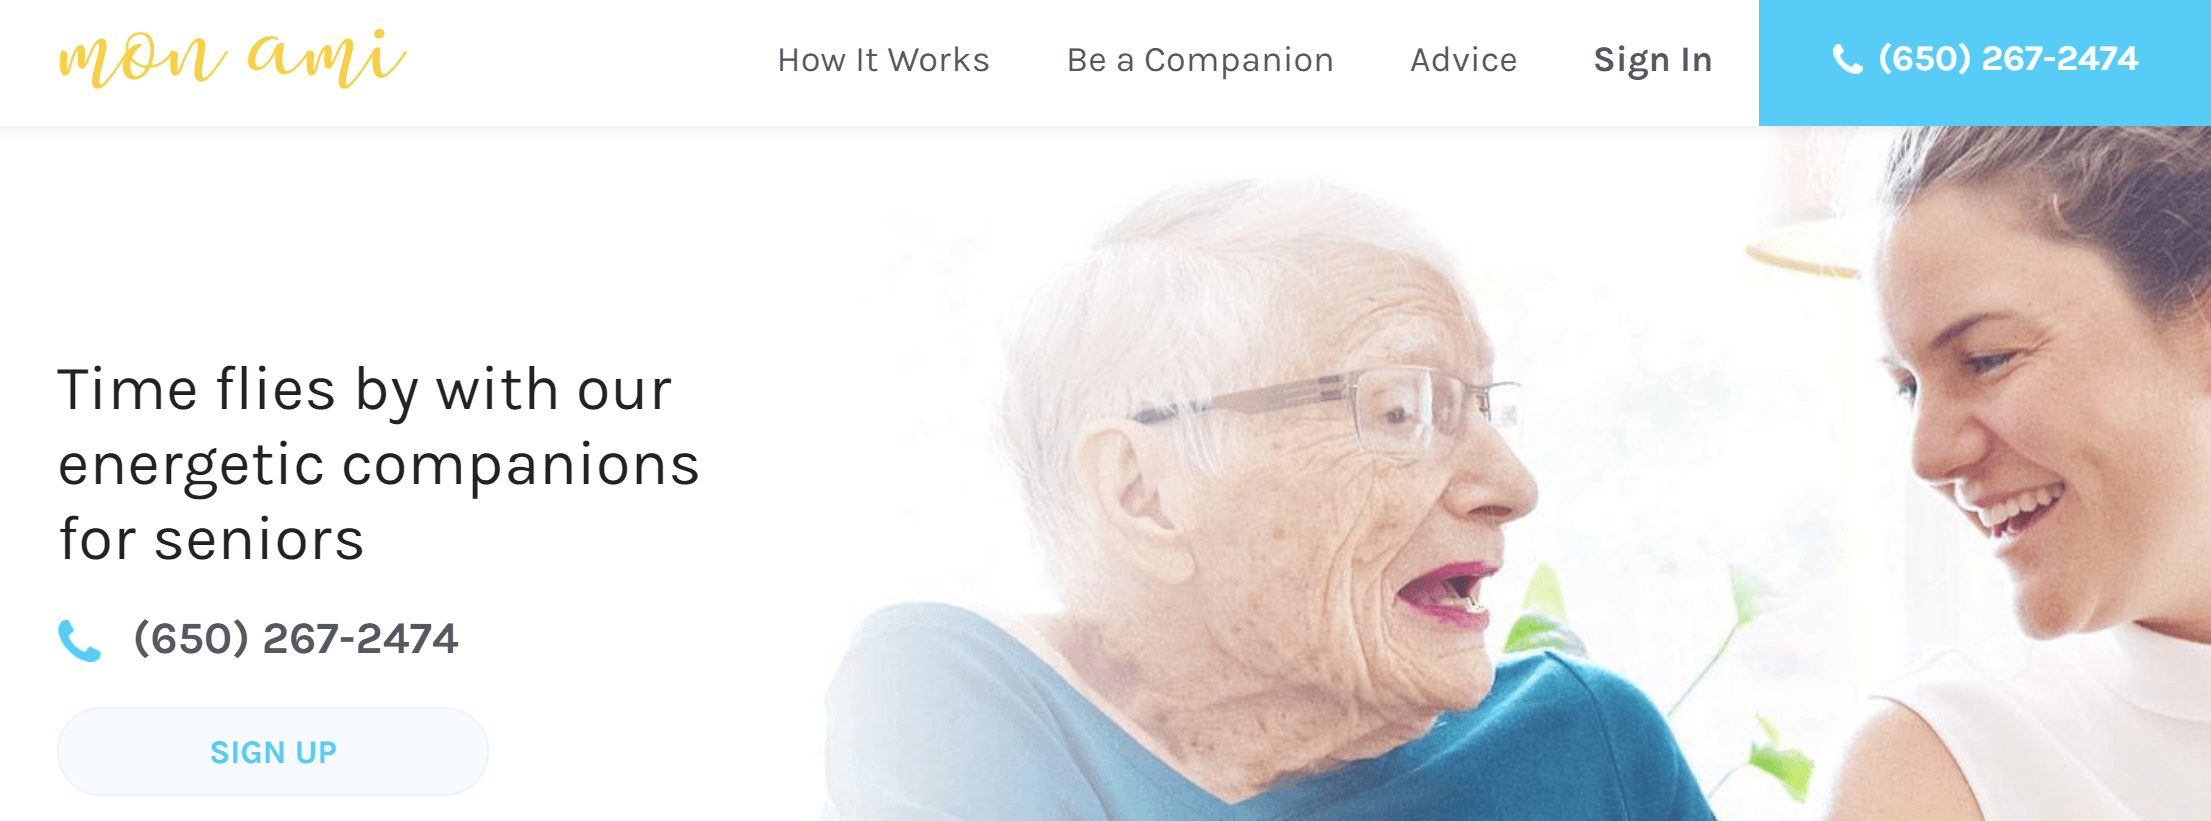 Mon Ami Lands $3.4M to Tackle Social Isolation in Aging